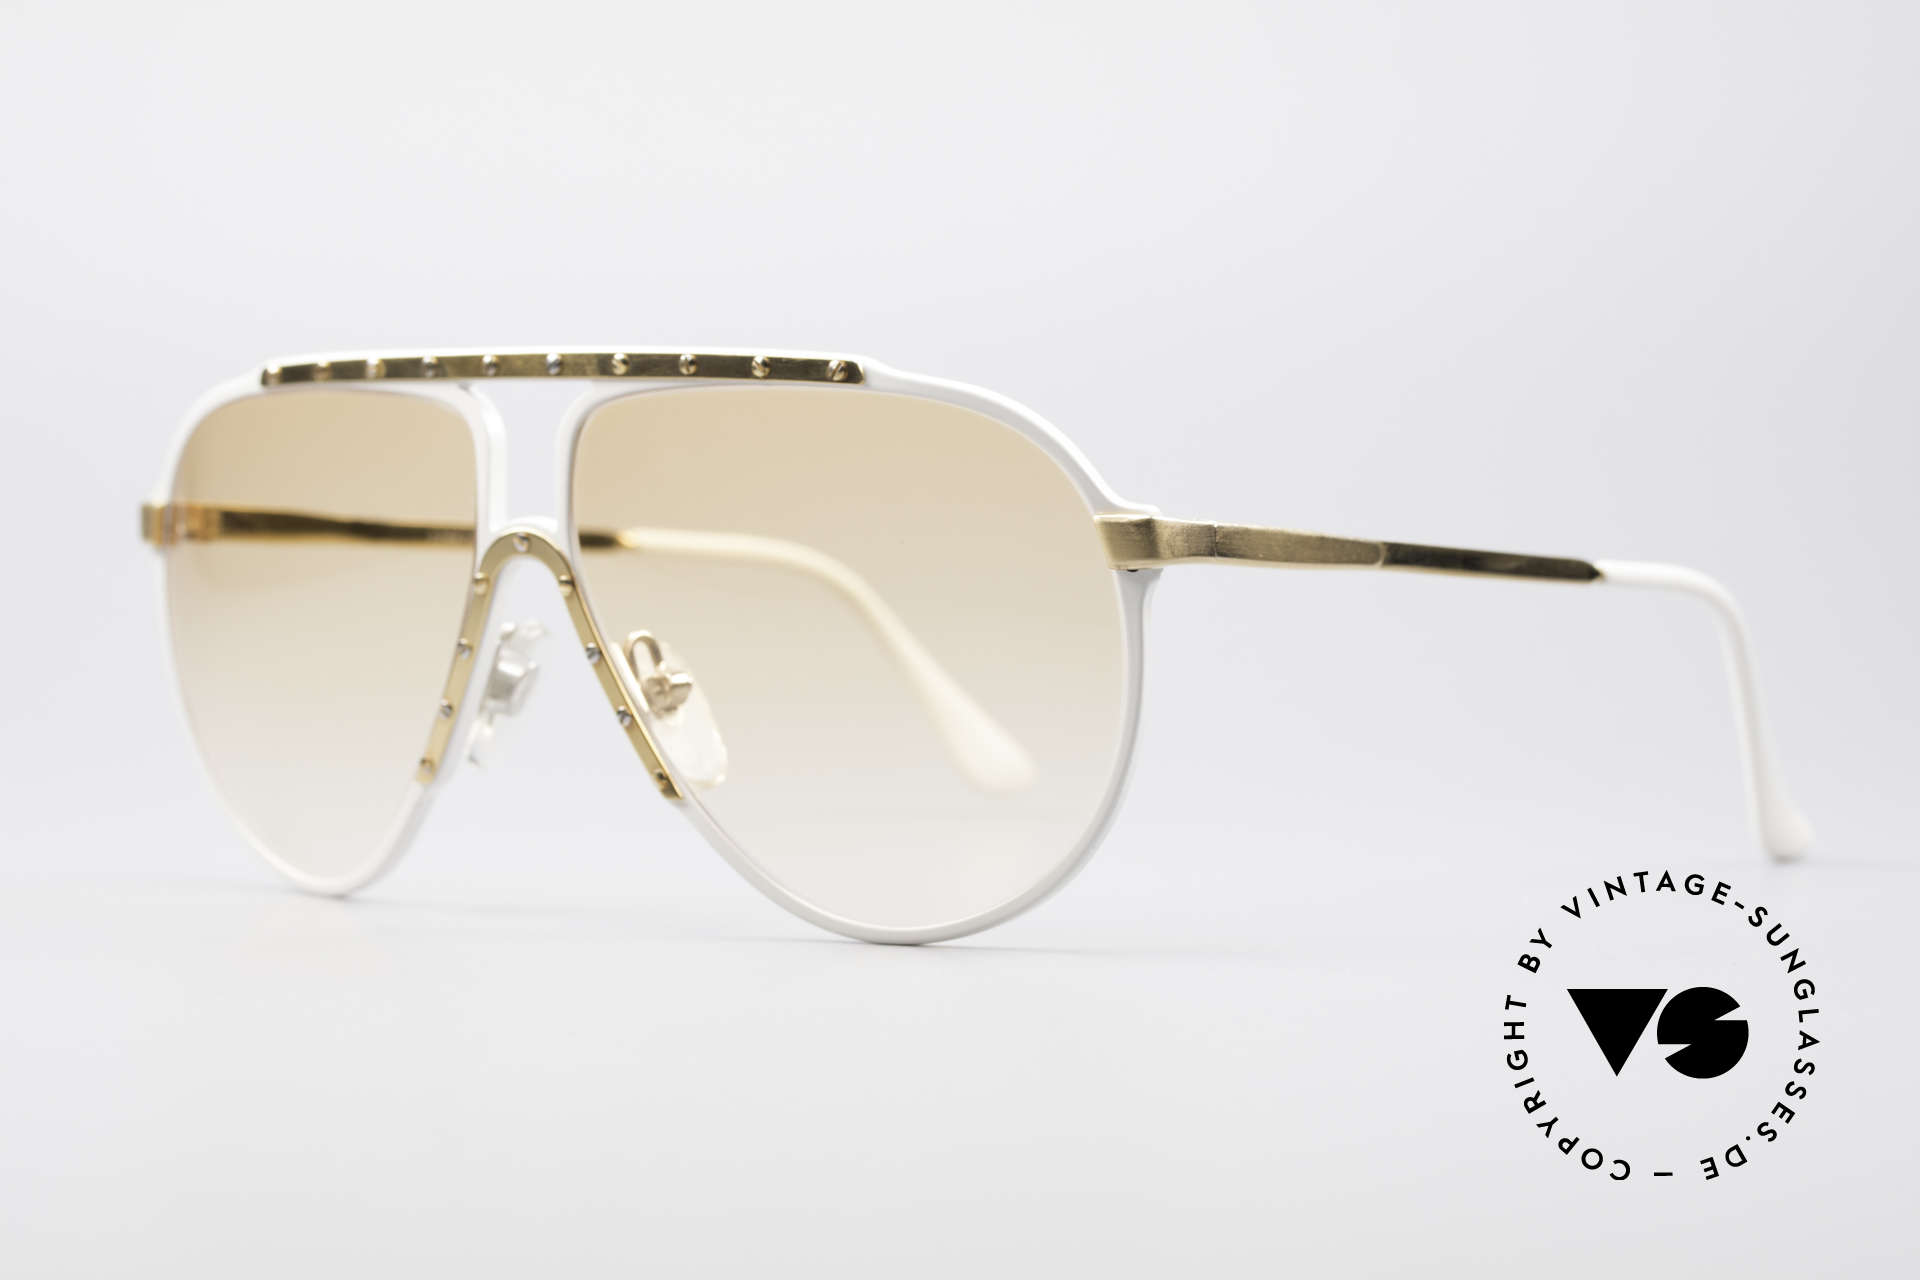 Alpina M1 Iconic 80's Sunglasses, top quality (handmade in W.Germany) + Versace case, Made for Men and Women